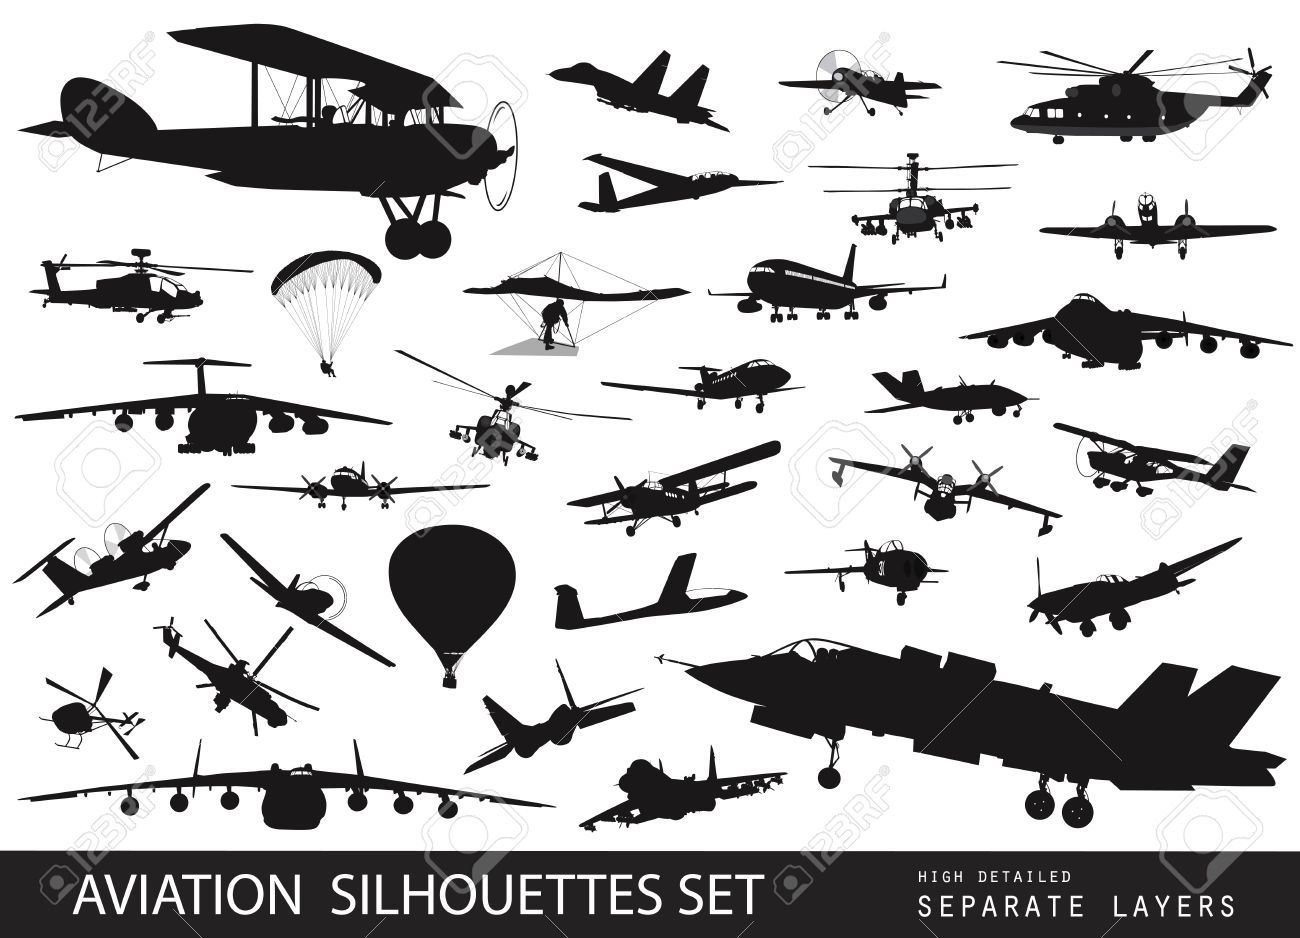 Biplane clipart silhouette. Vintage and modern aircraft